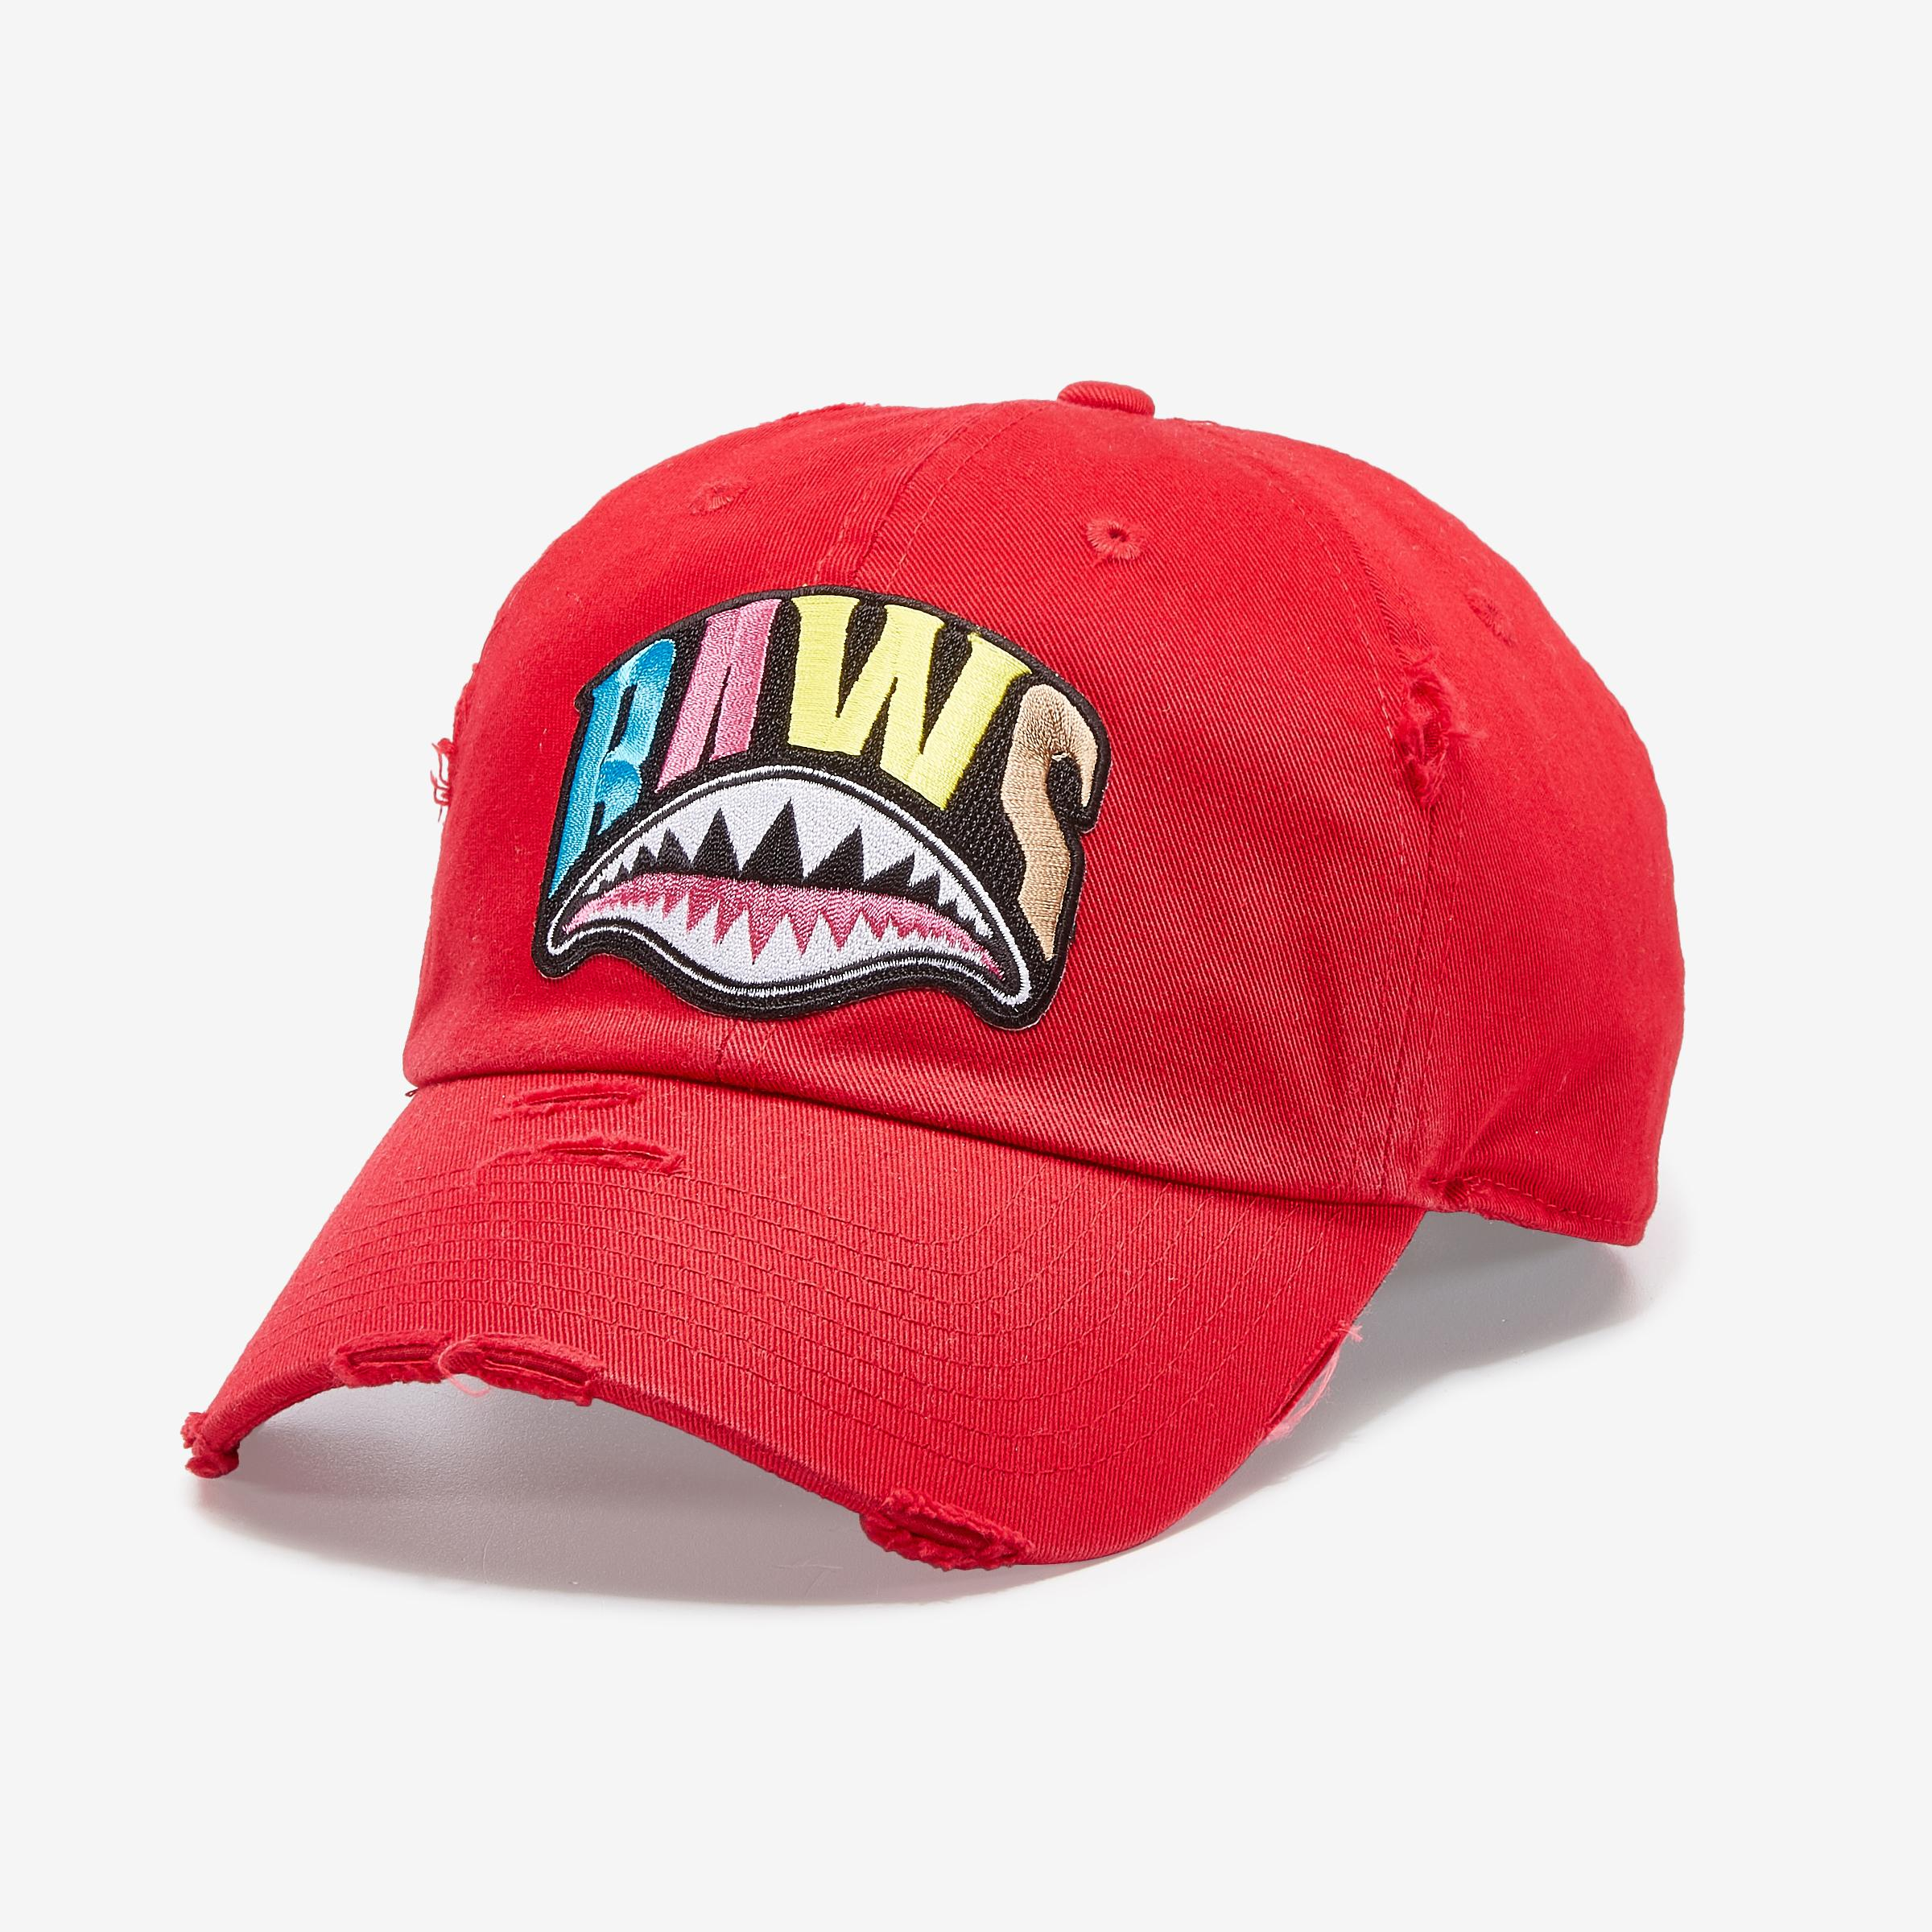 Crazy Shark Hat